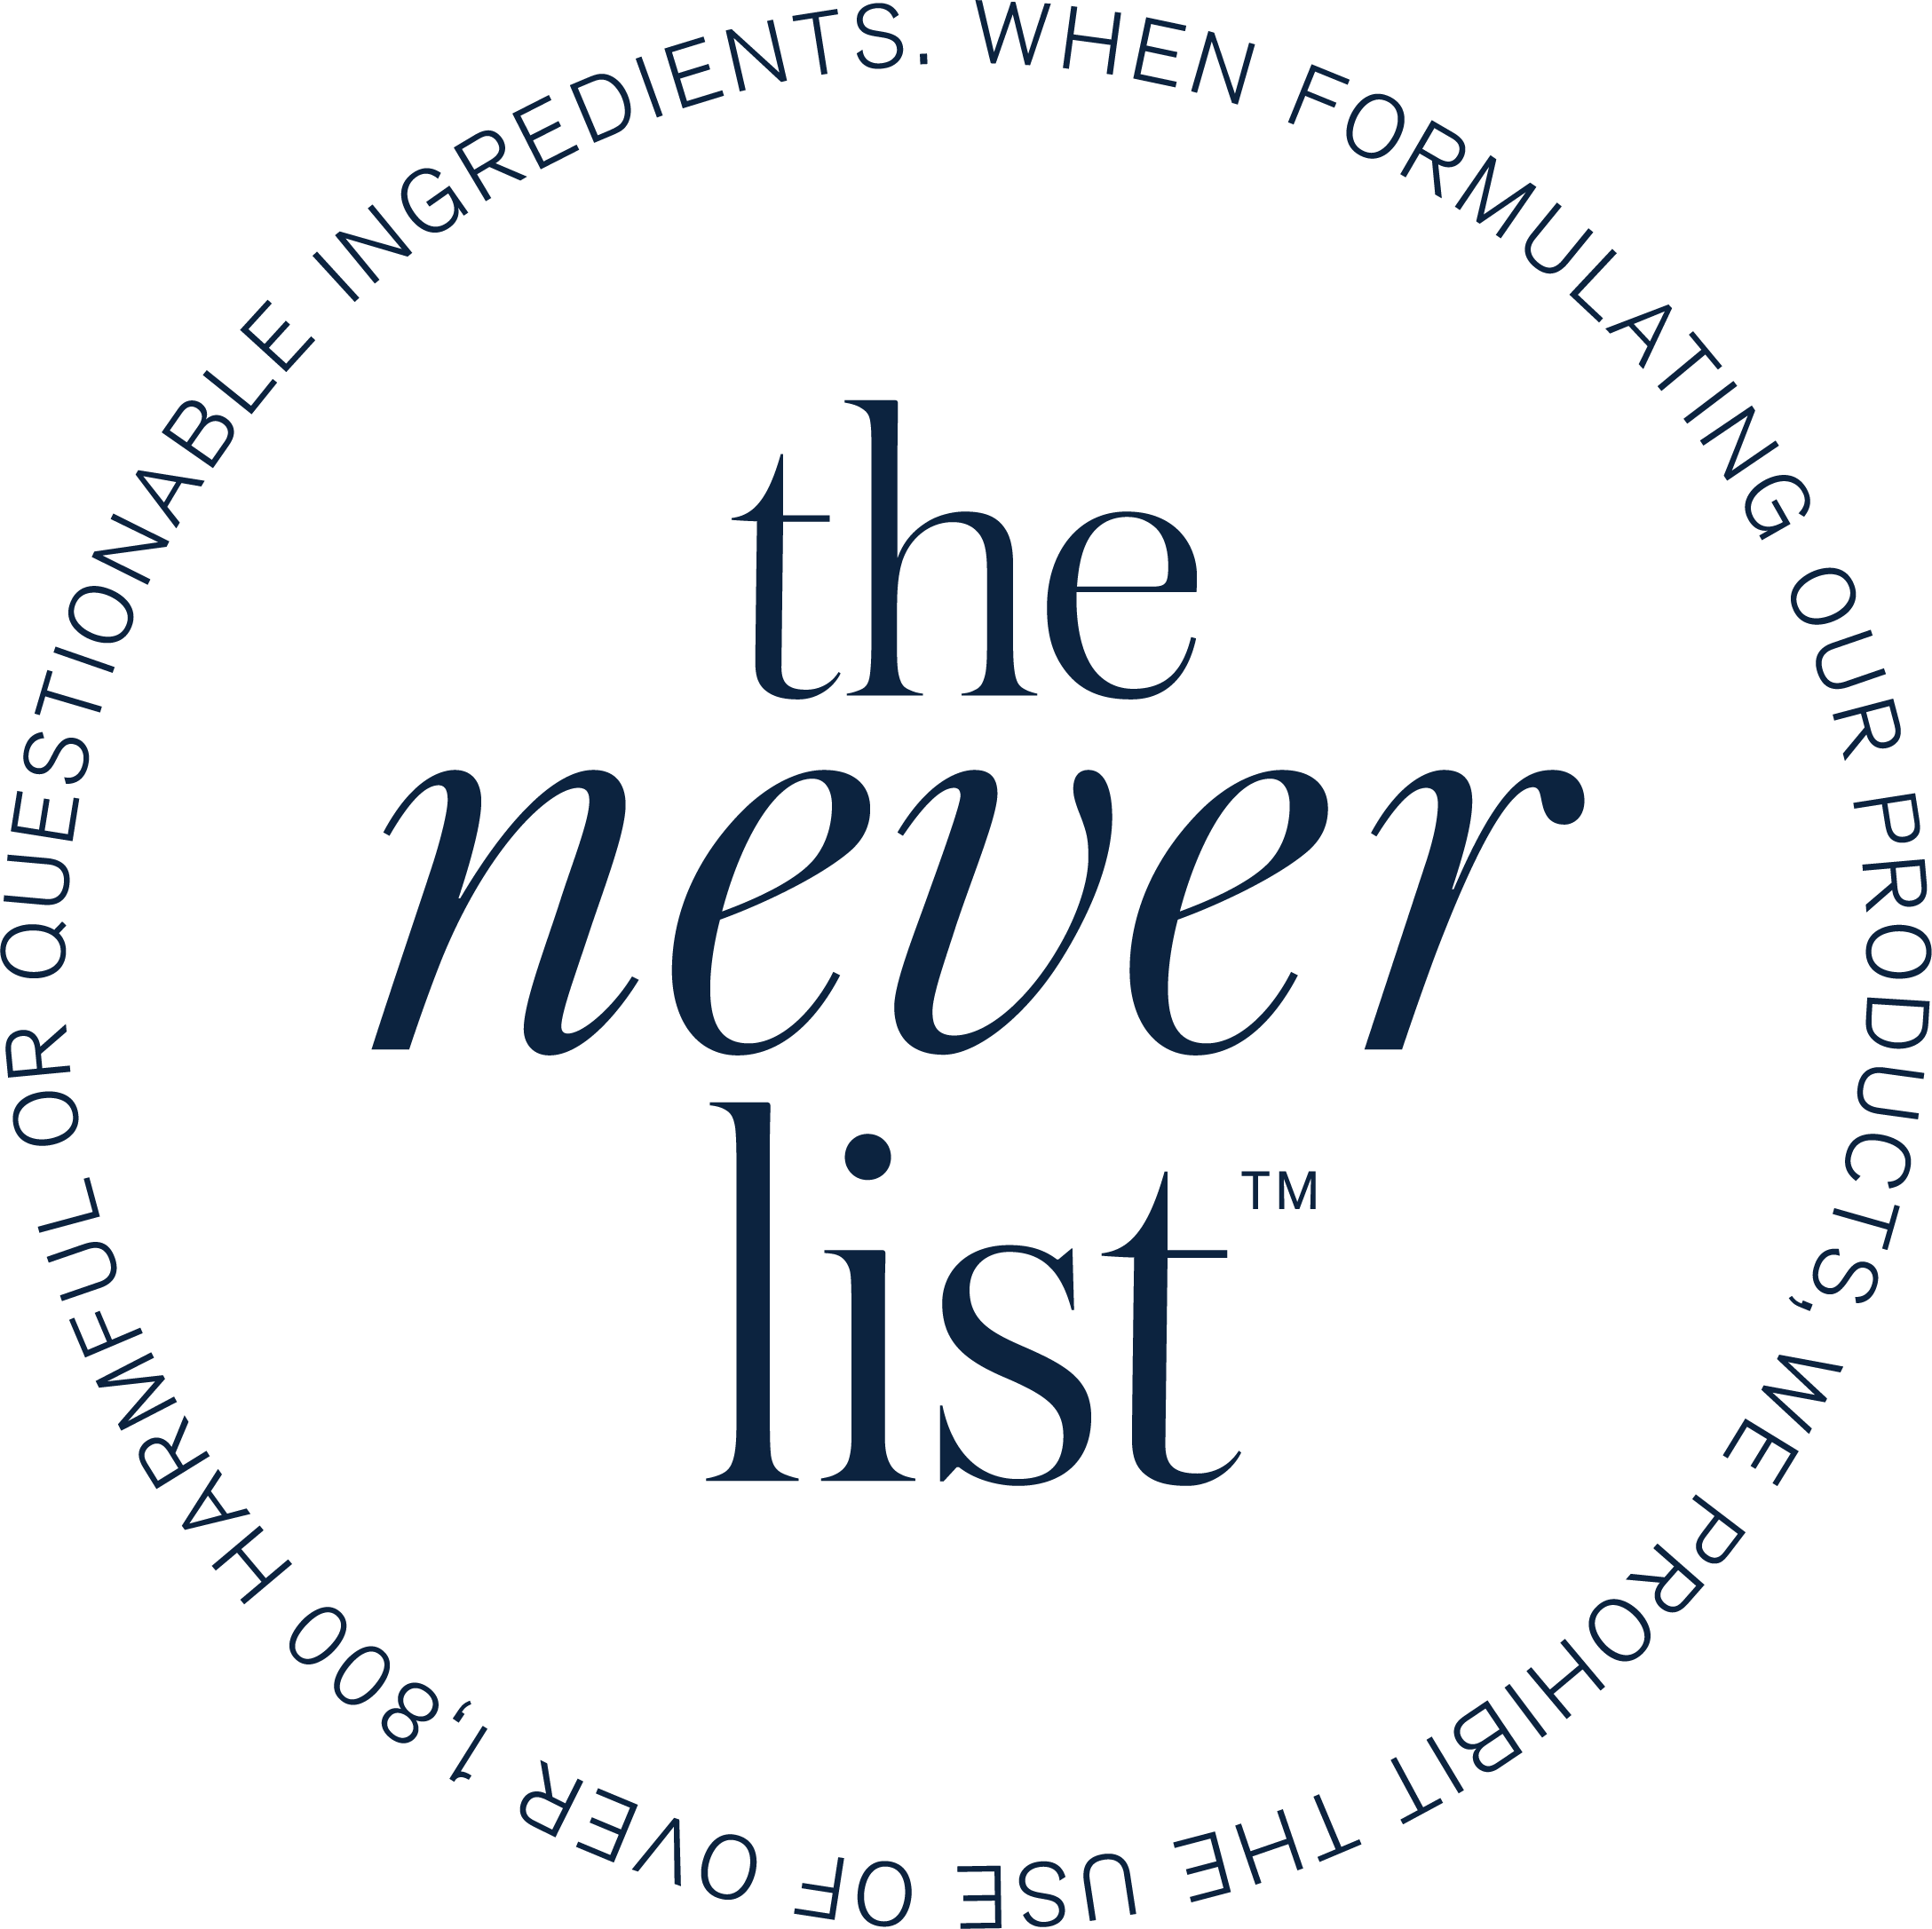 Never List logo